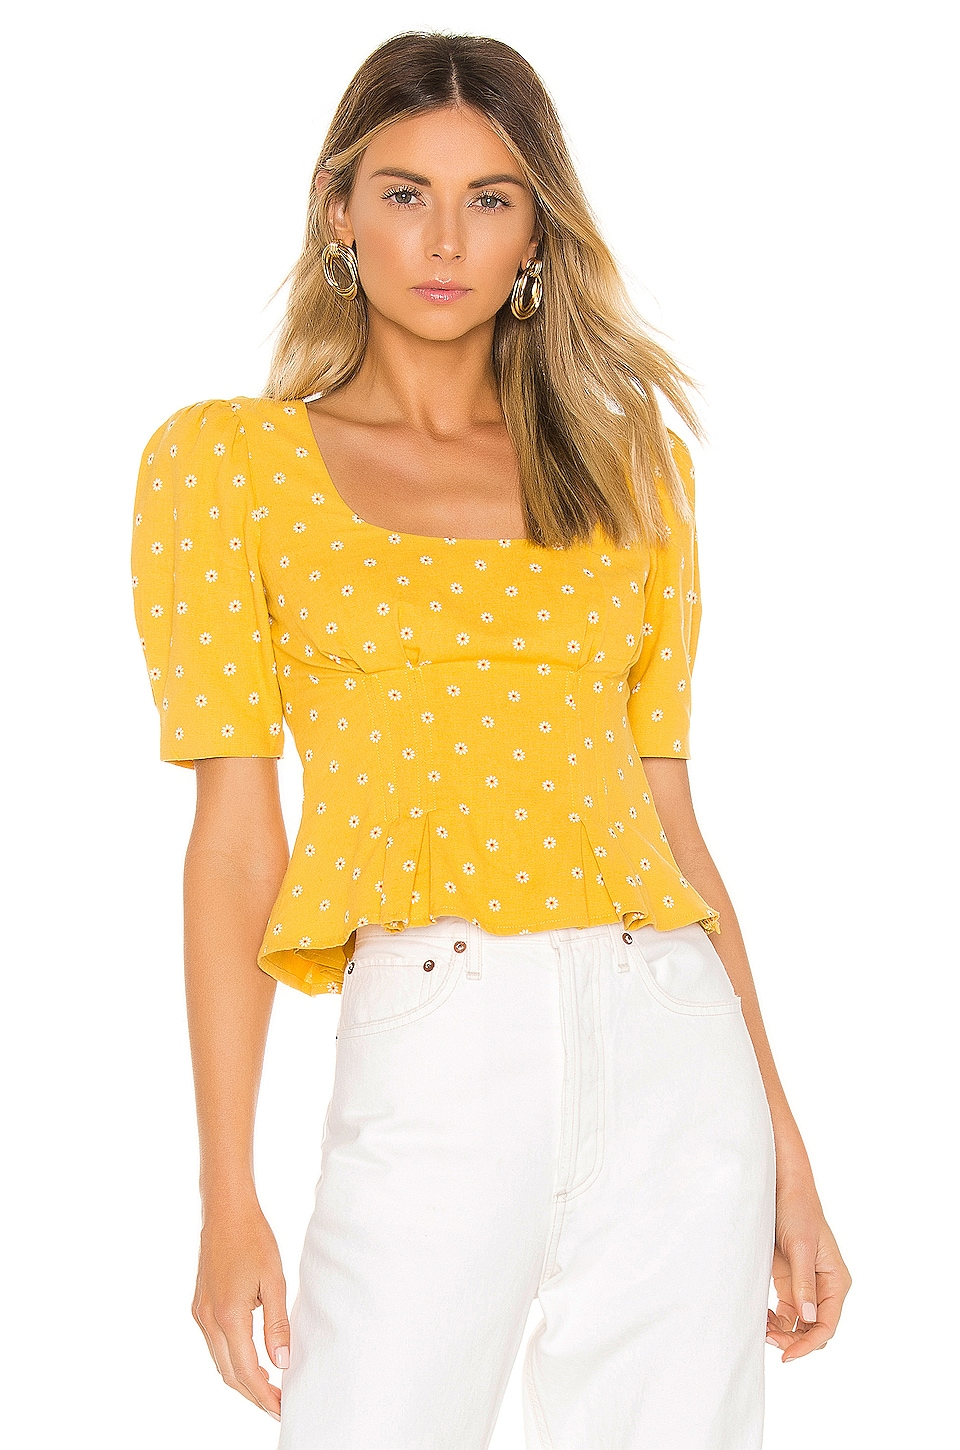 MAJORELLE Marla Top in Tuscany Yellow